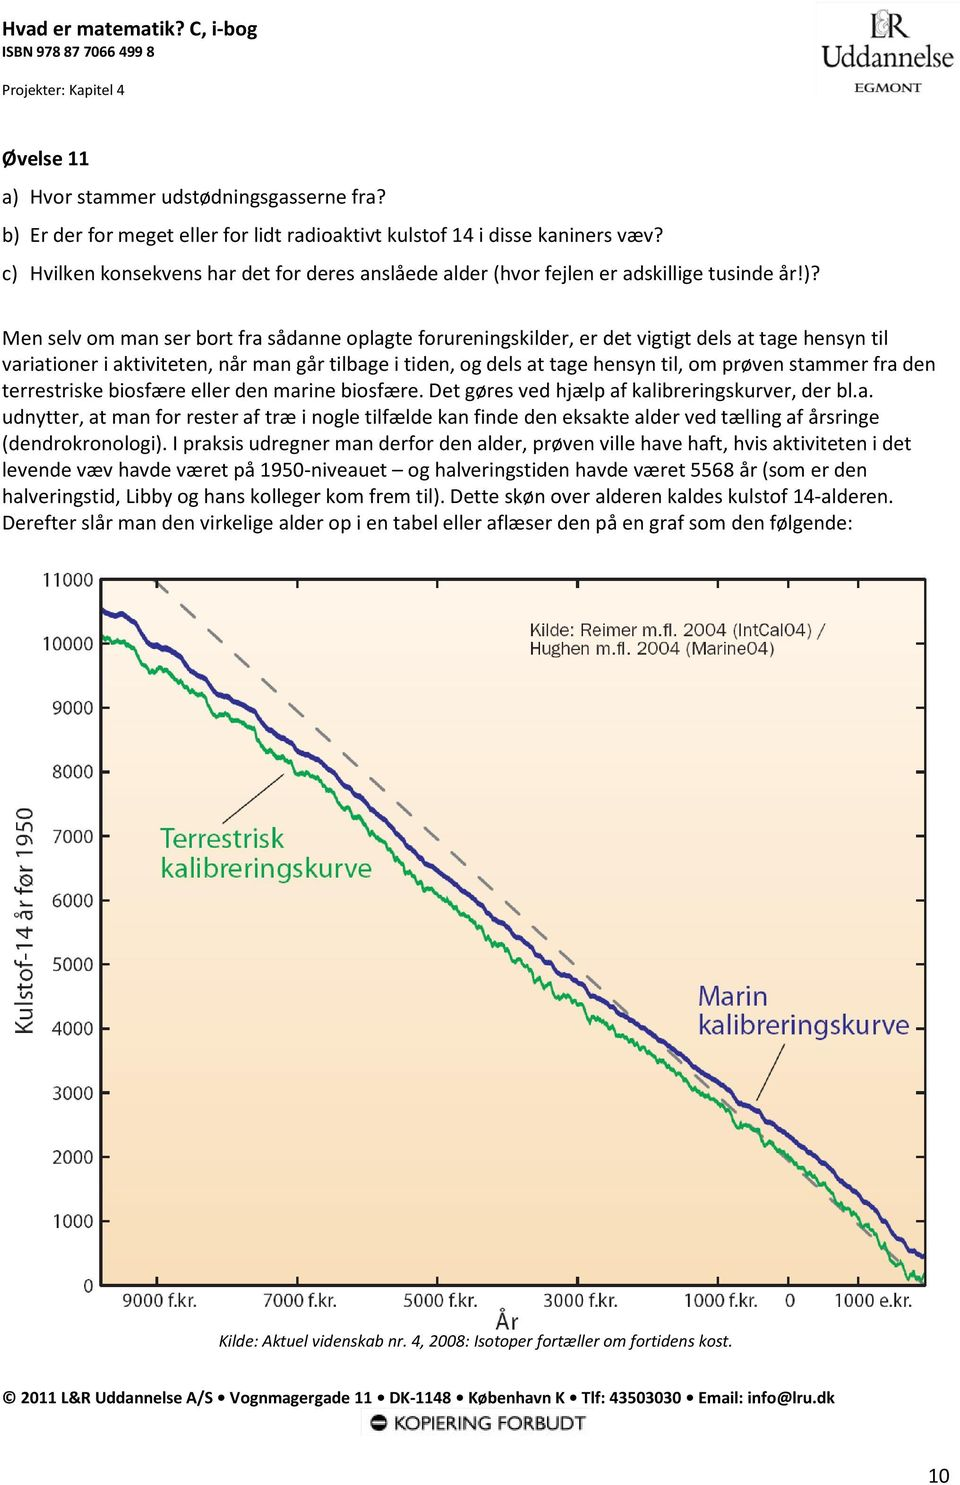 Carbon dating differential ligning